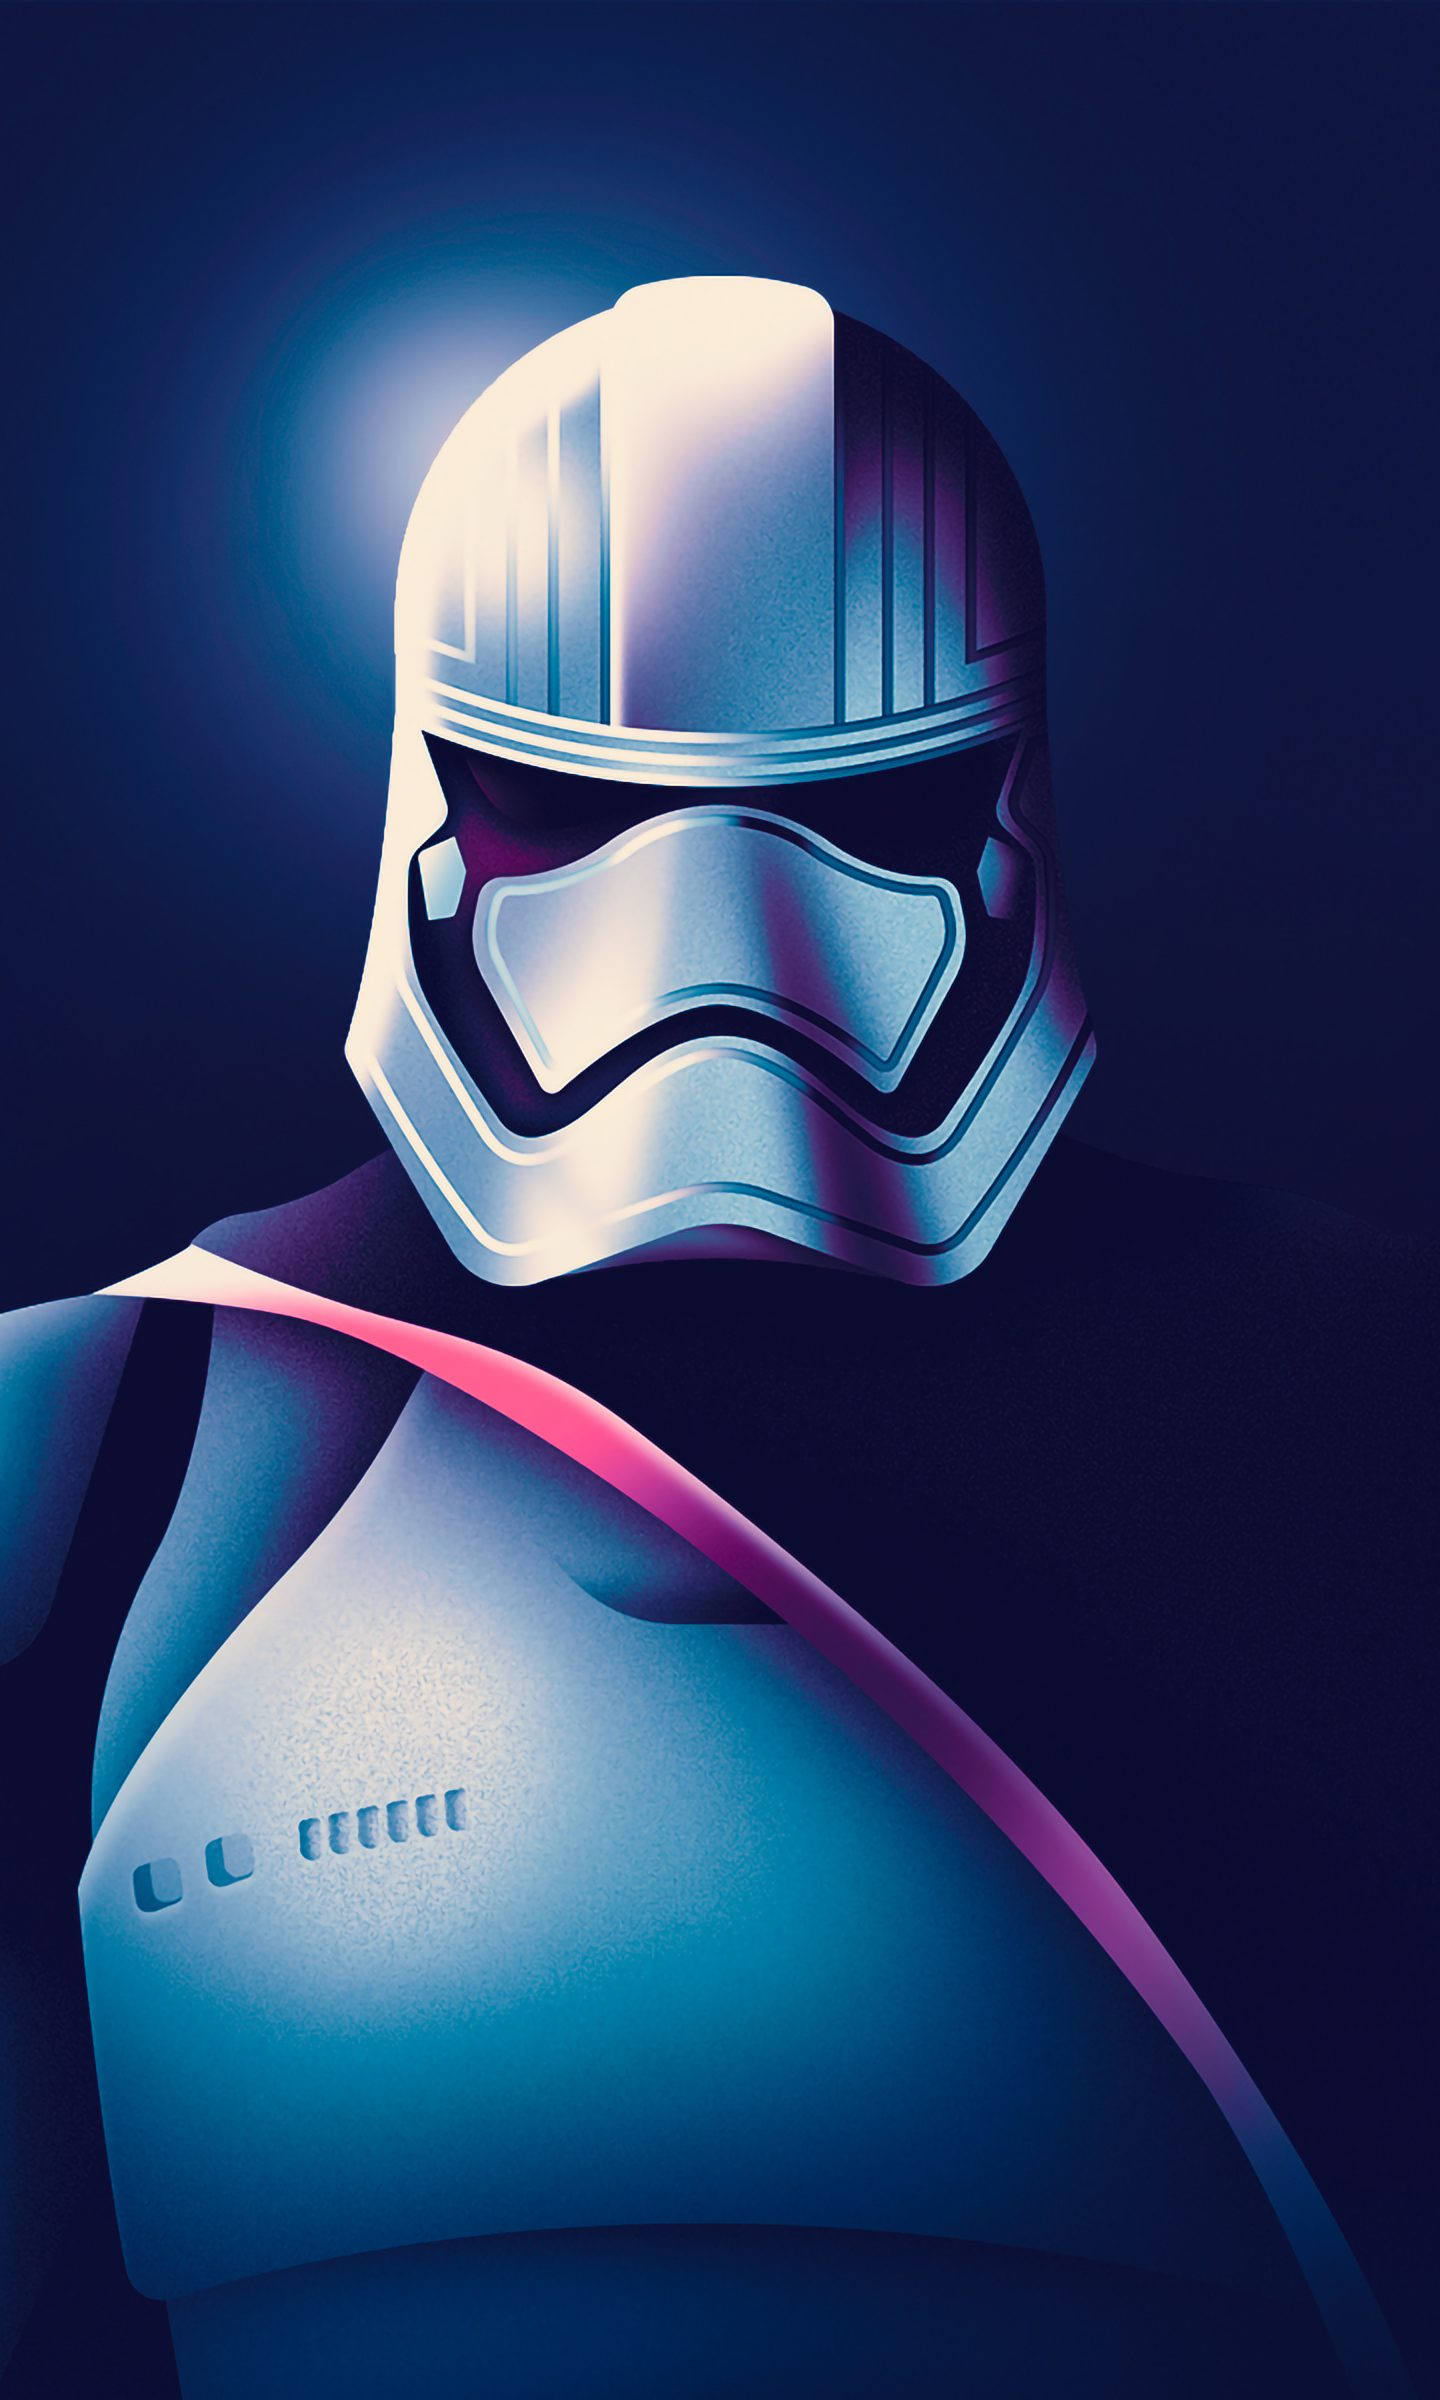 Star Wars Captain Phasma Artwork 4k Wallpaper Best Wallpapers